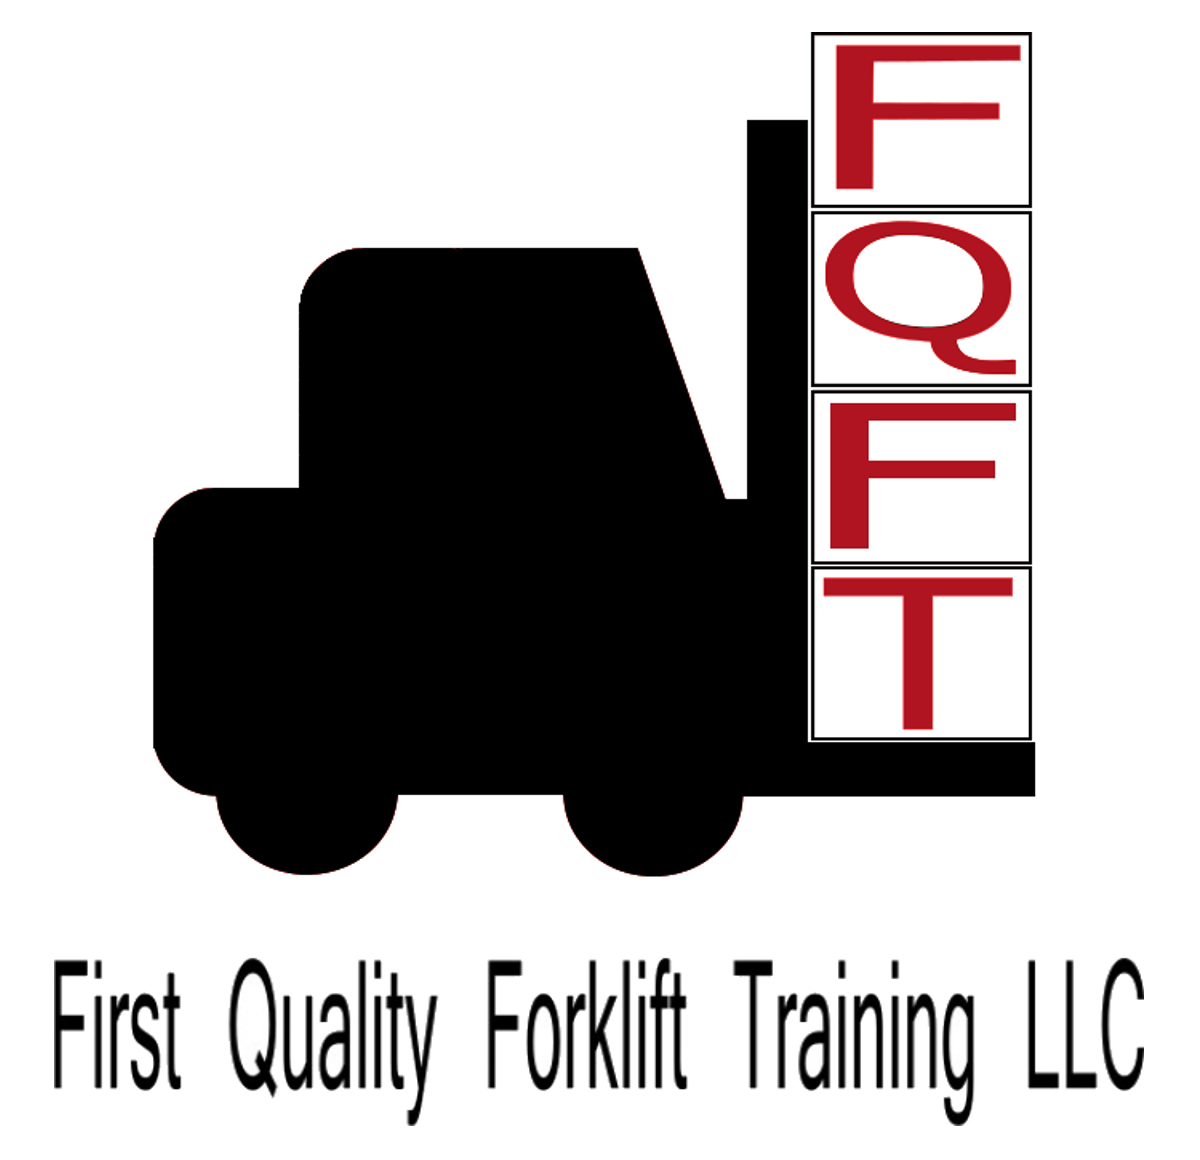 Forklift Certification Wi First Quality Forklift Training